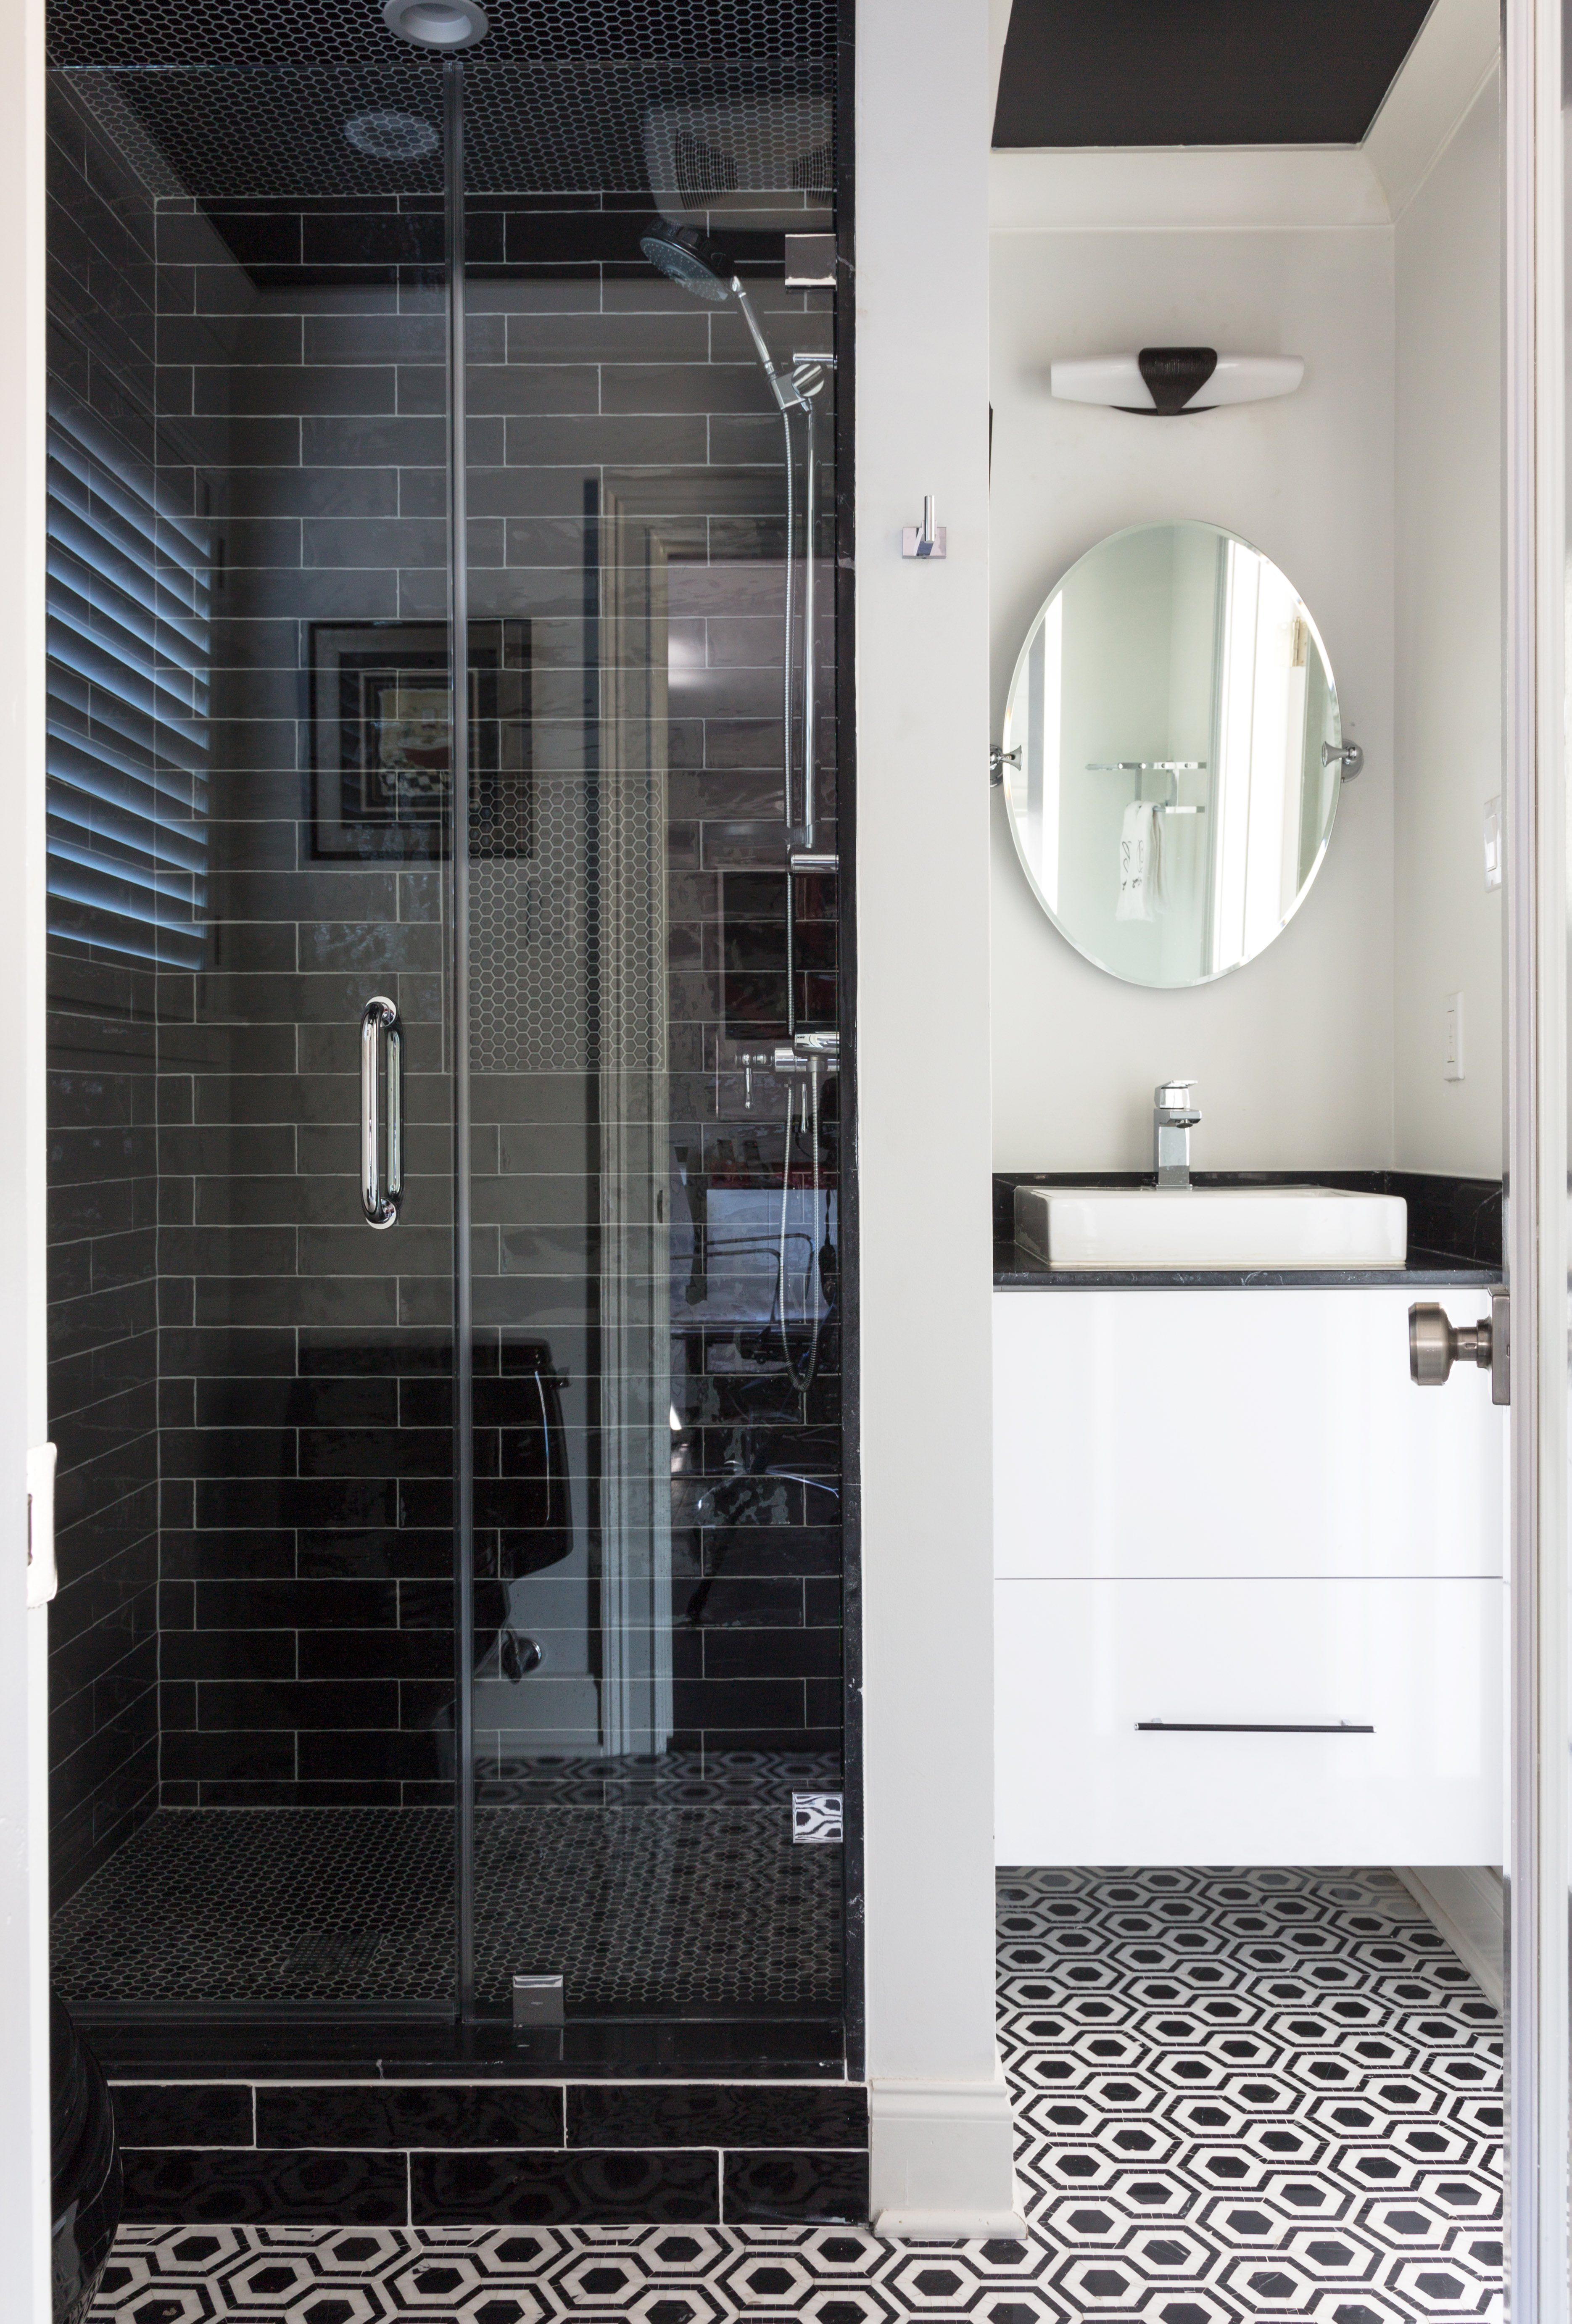 25 Walk In Shower Ideas Bathrooms With Walk In Showers